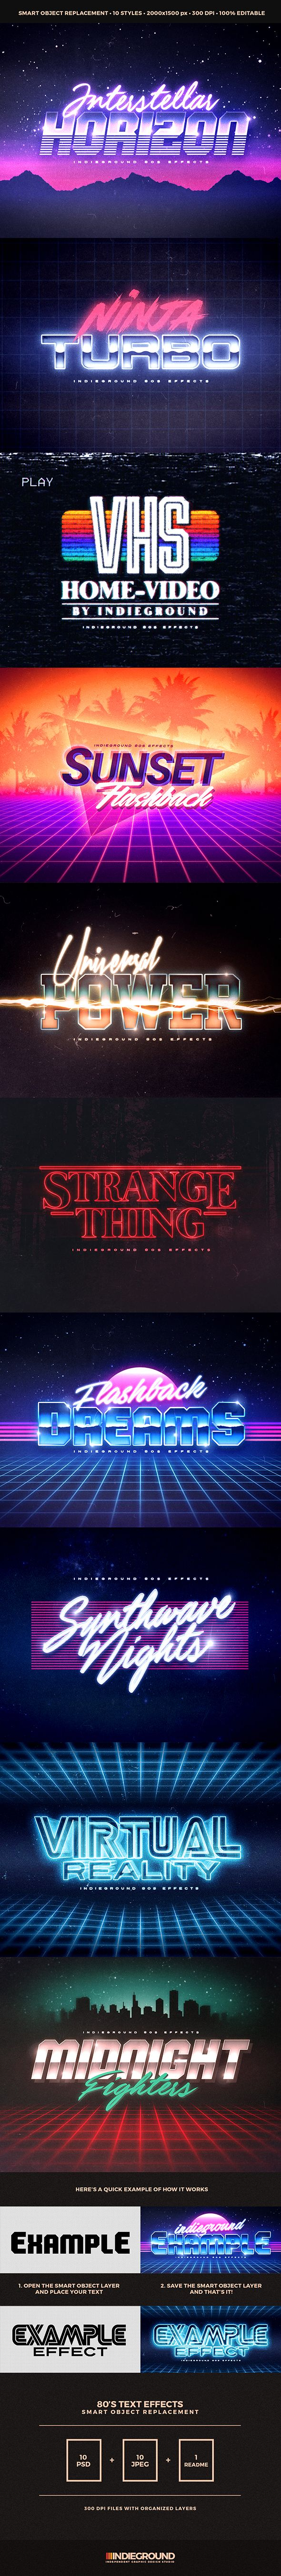 80s Text Effects - Add-on for Photoshop